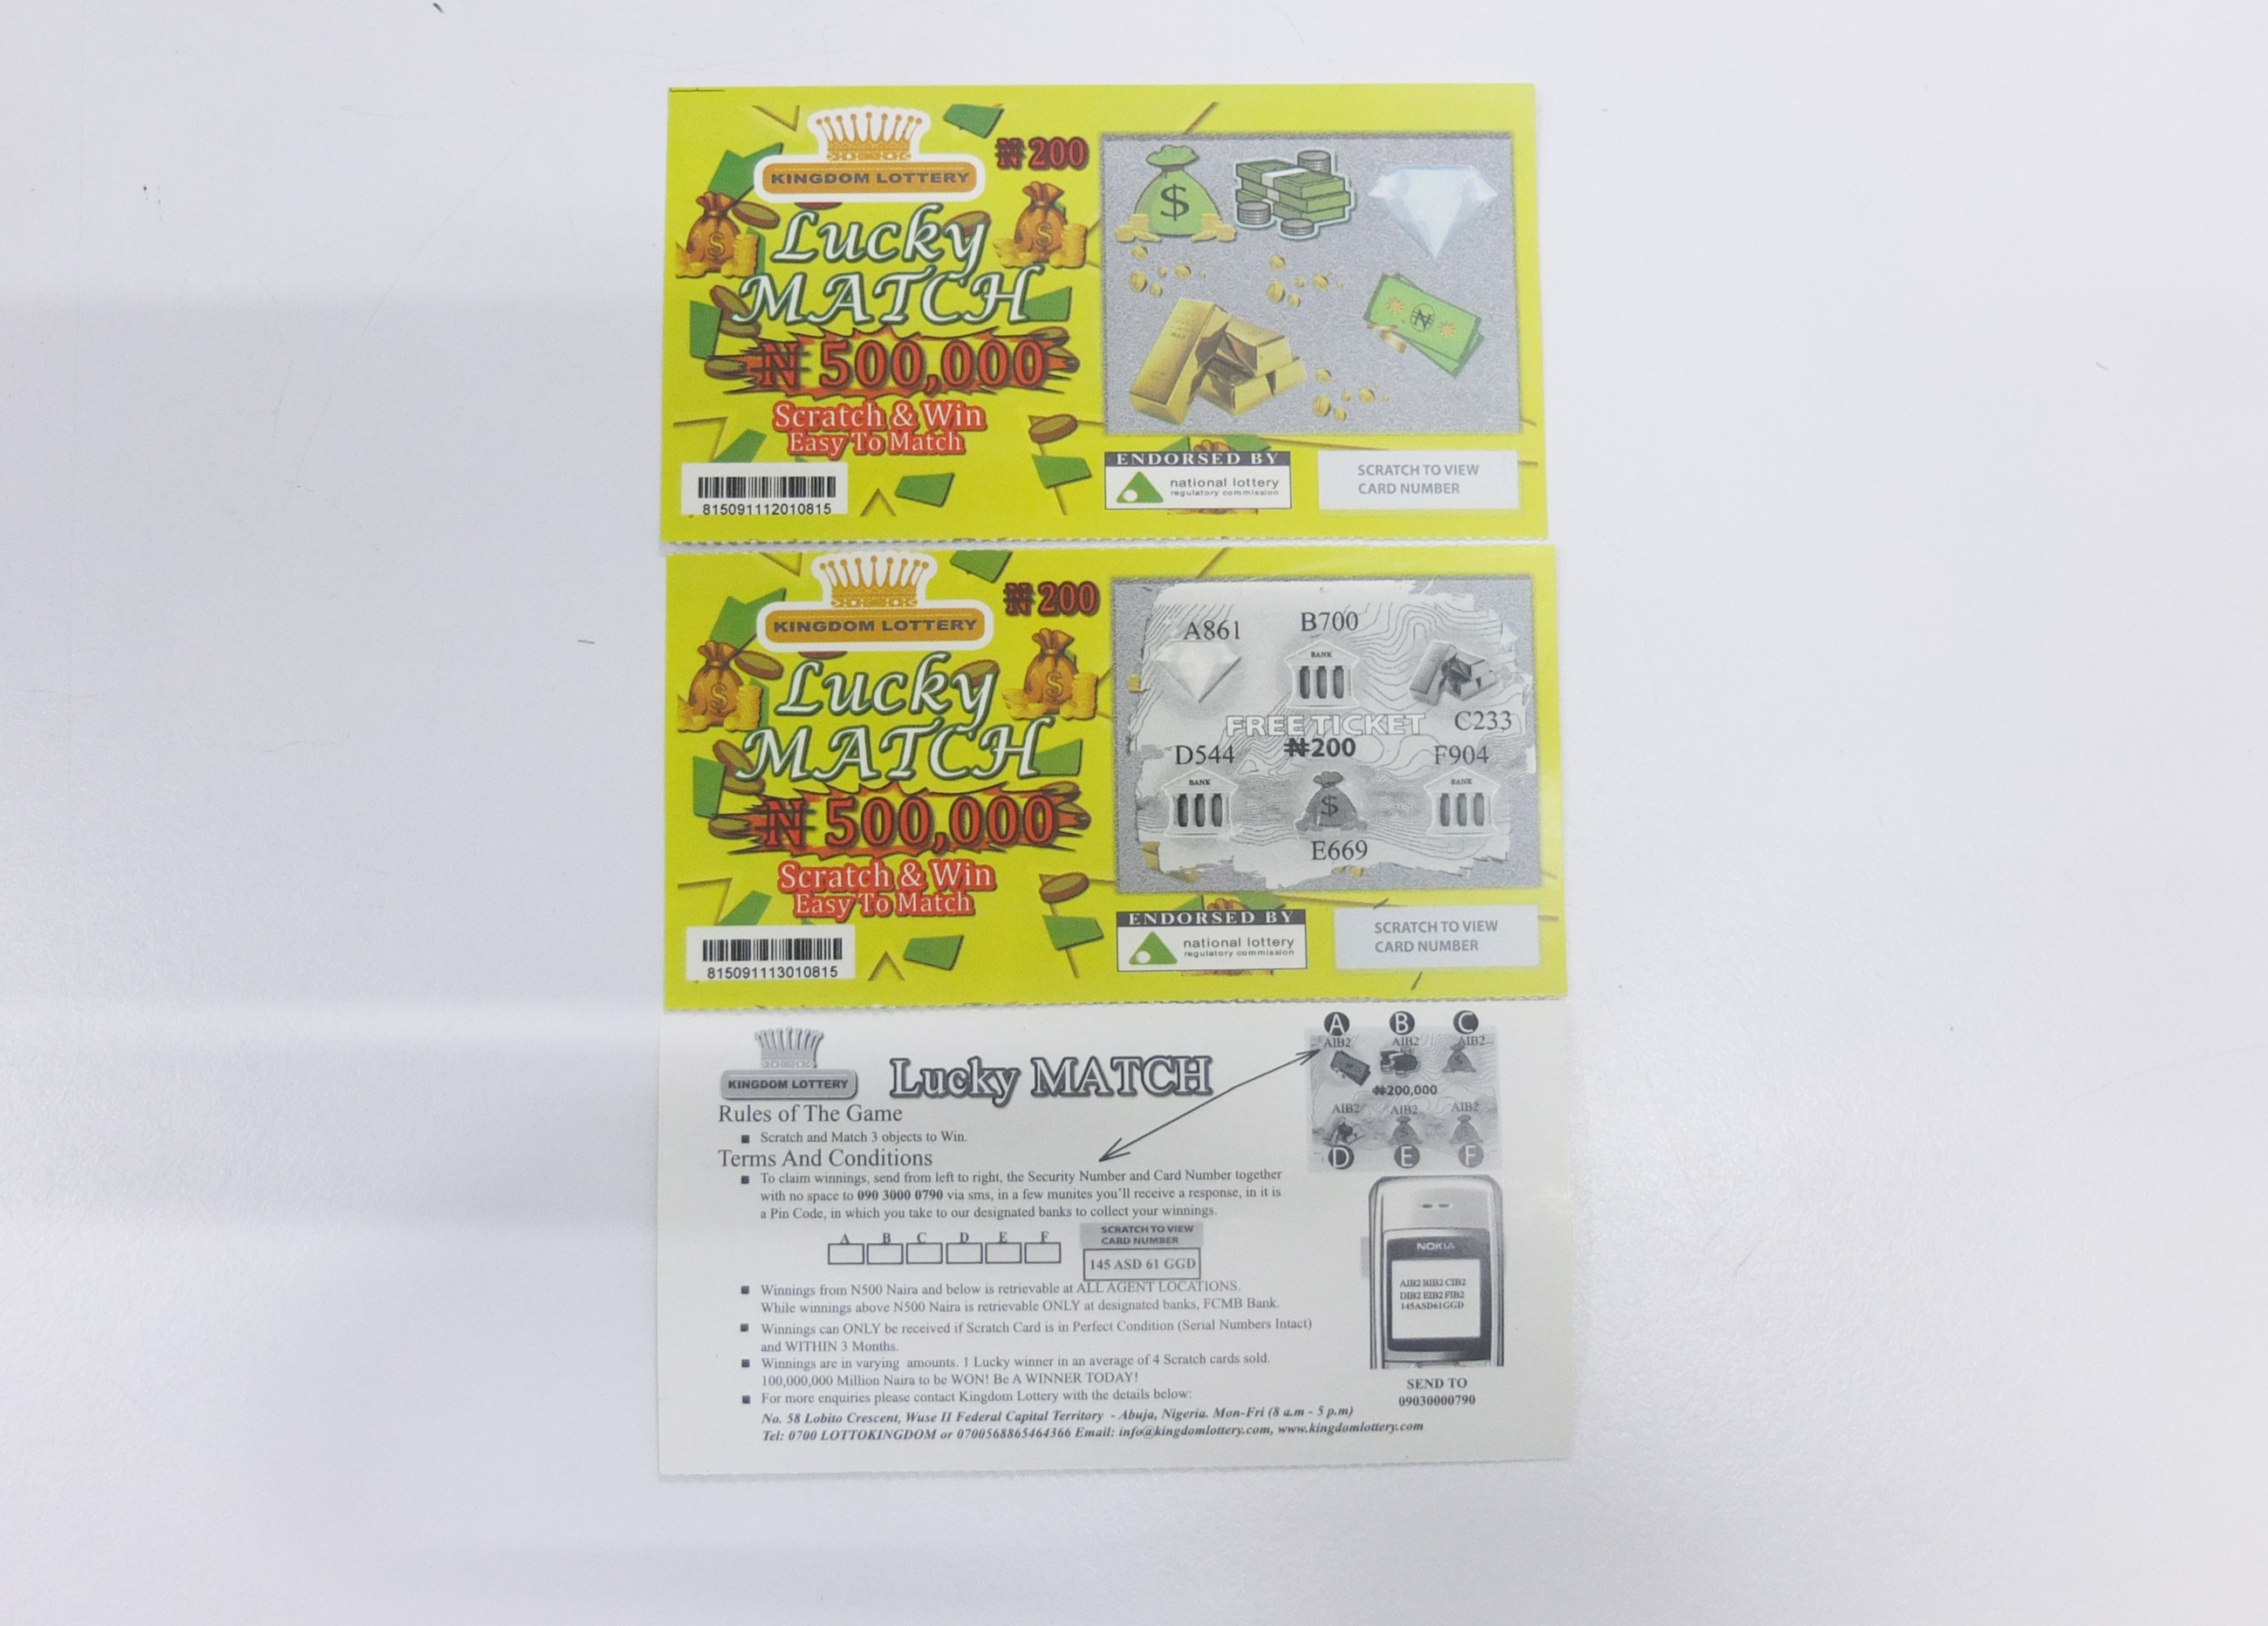 Printing lucky card scratch off lottery tickets & paper lottery scracth card